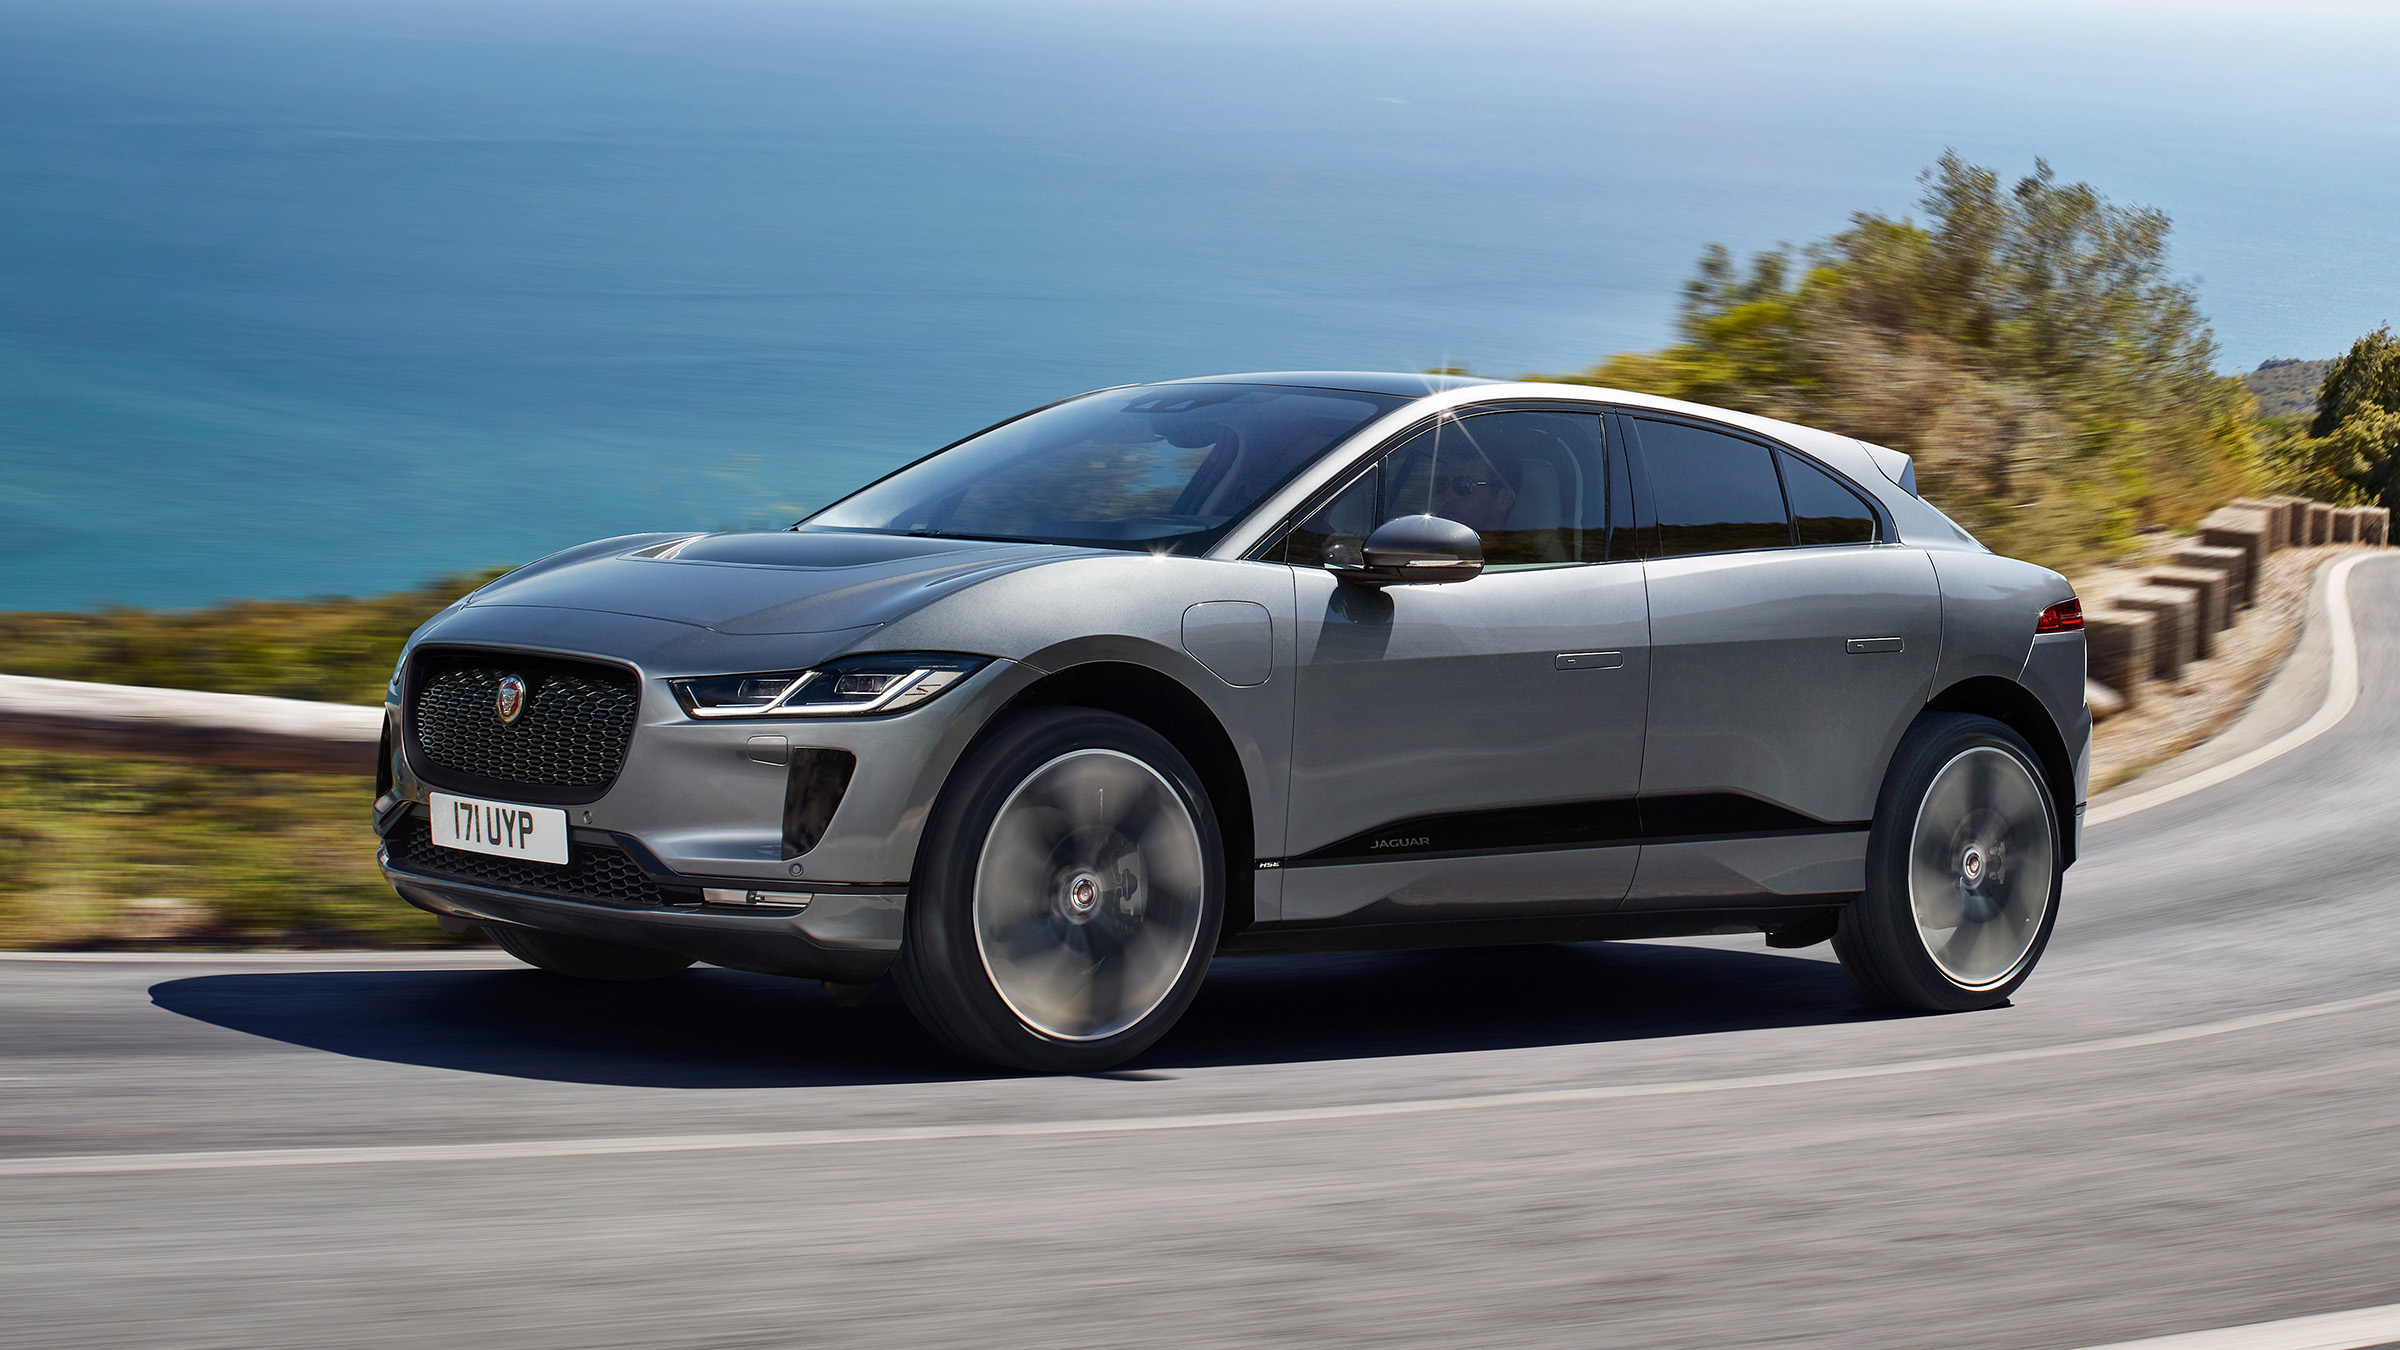 2020 jaguar i-pace brings faster charging and upgraded